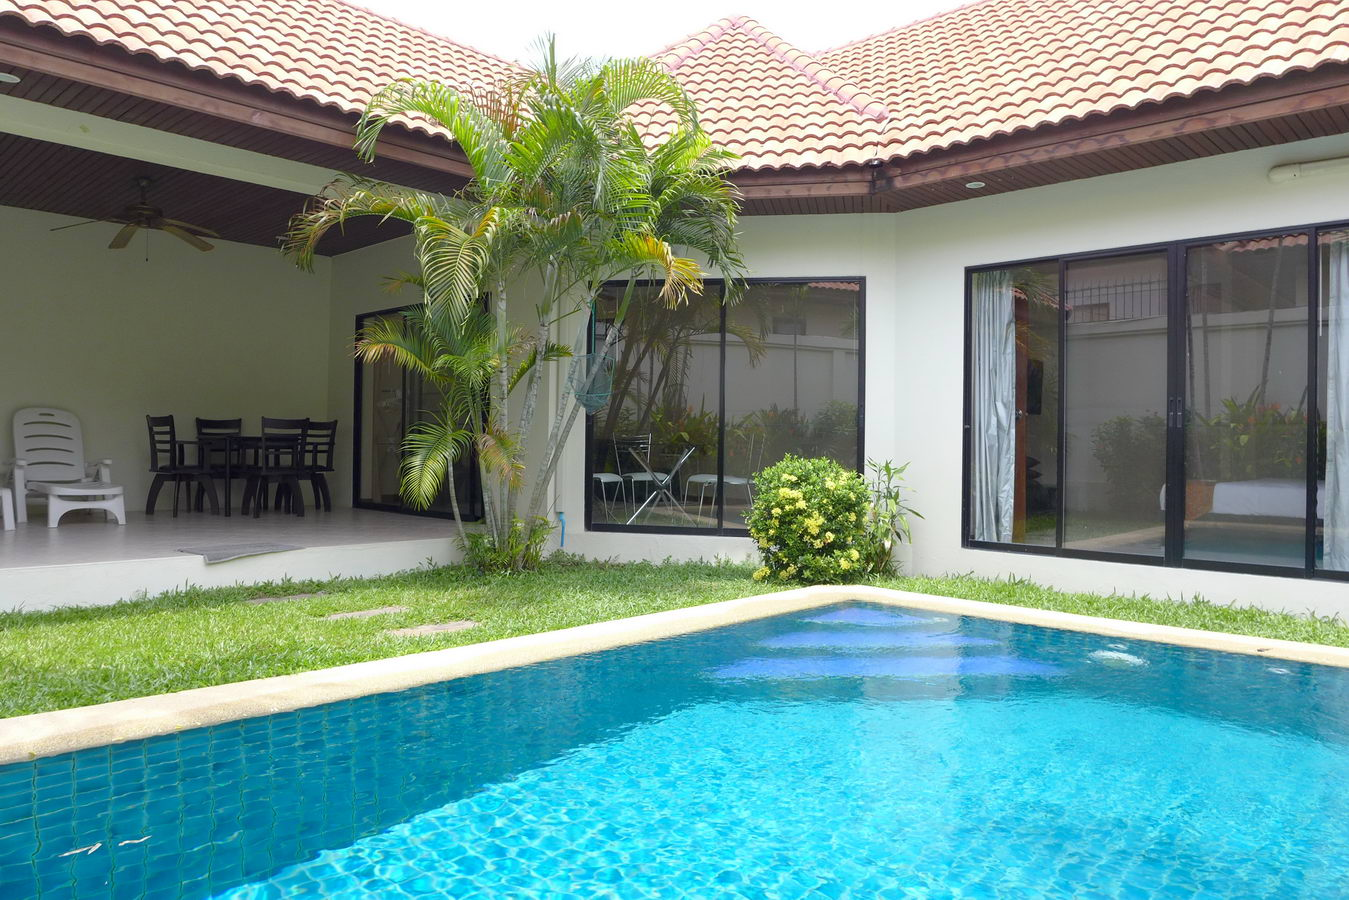 Pattaya Holiday Villa with private swimming pool Rent